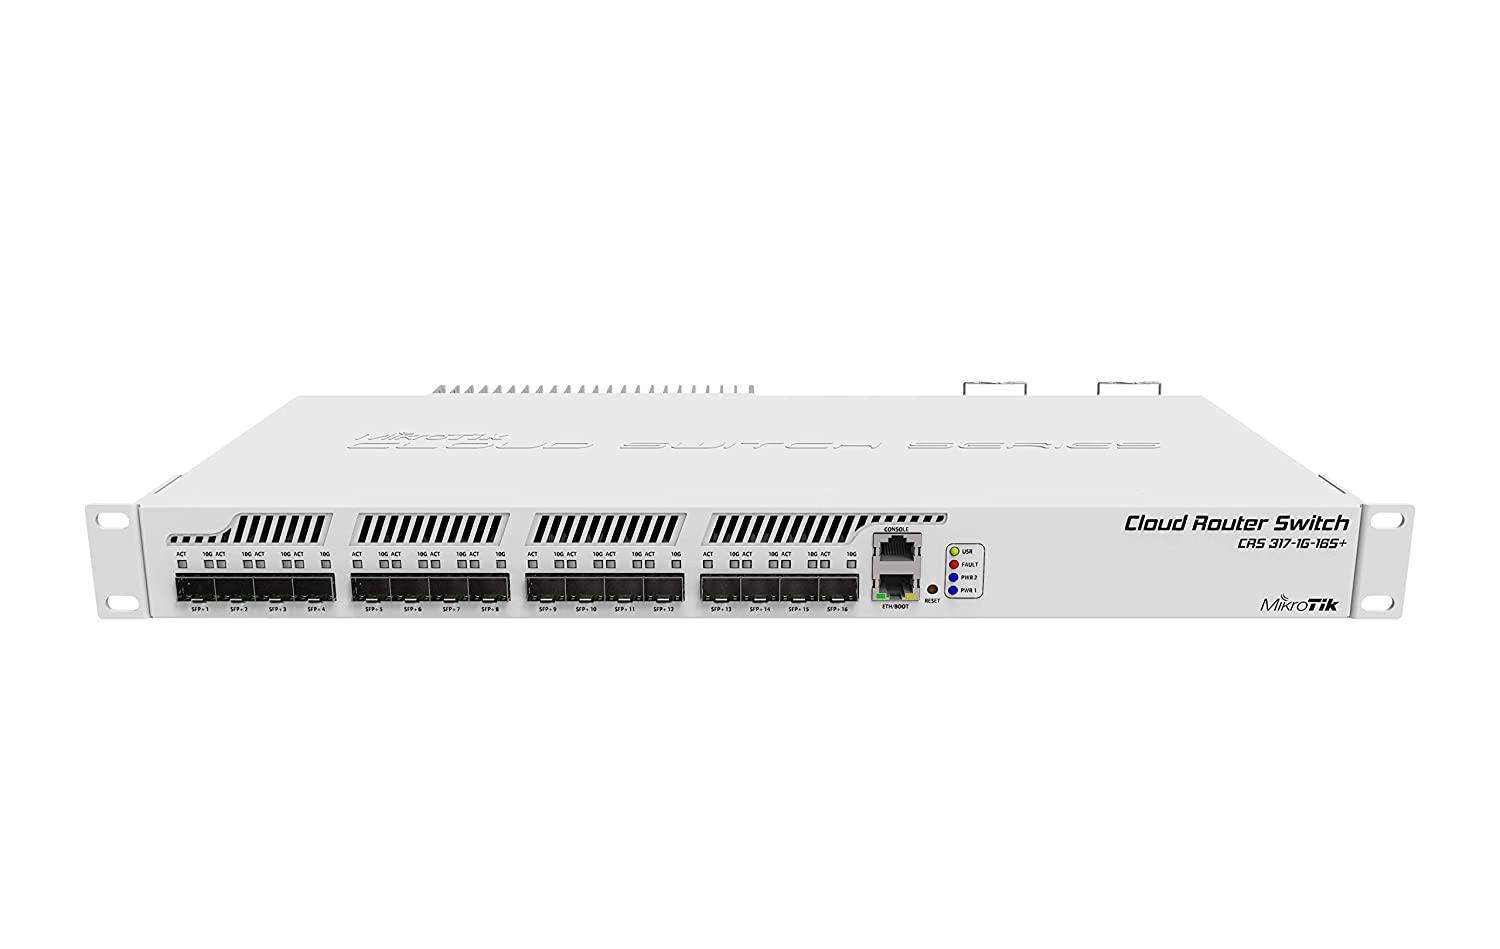 CRS317-1G-16S+RM MikroTik Cloud Router Switch Rack-mountable Manageable Switch with Layer 3 Features